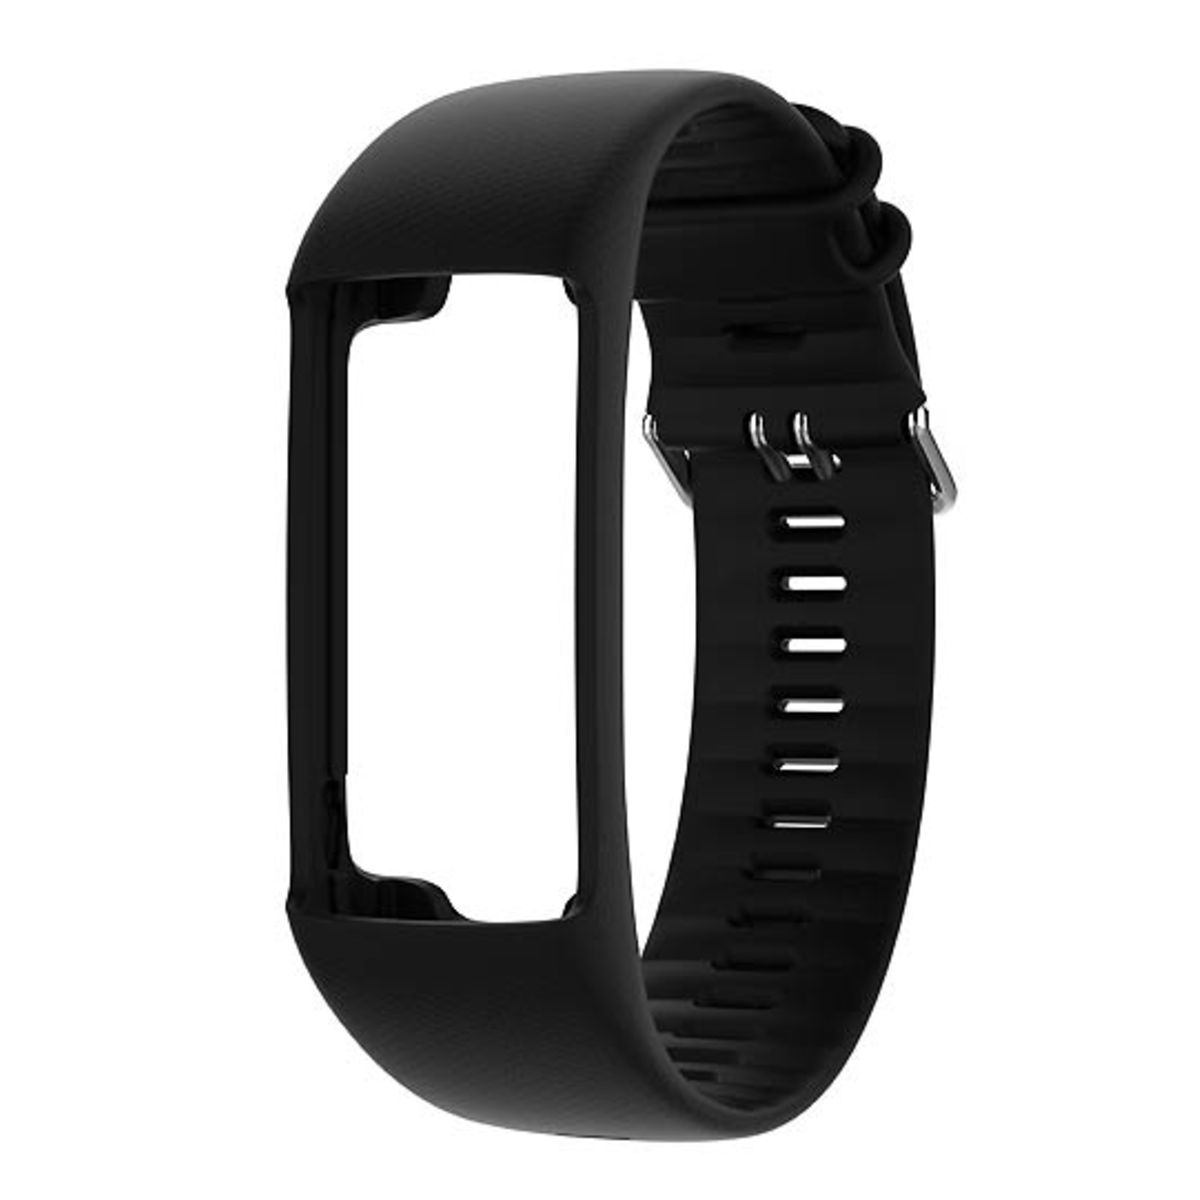 strap for A370 activity tracker